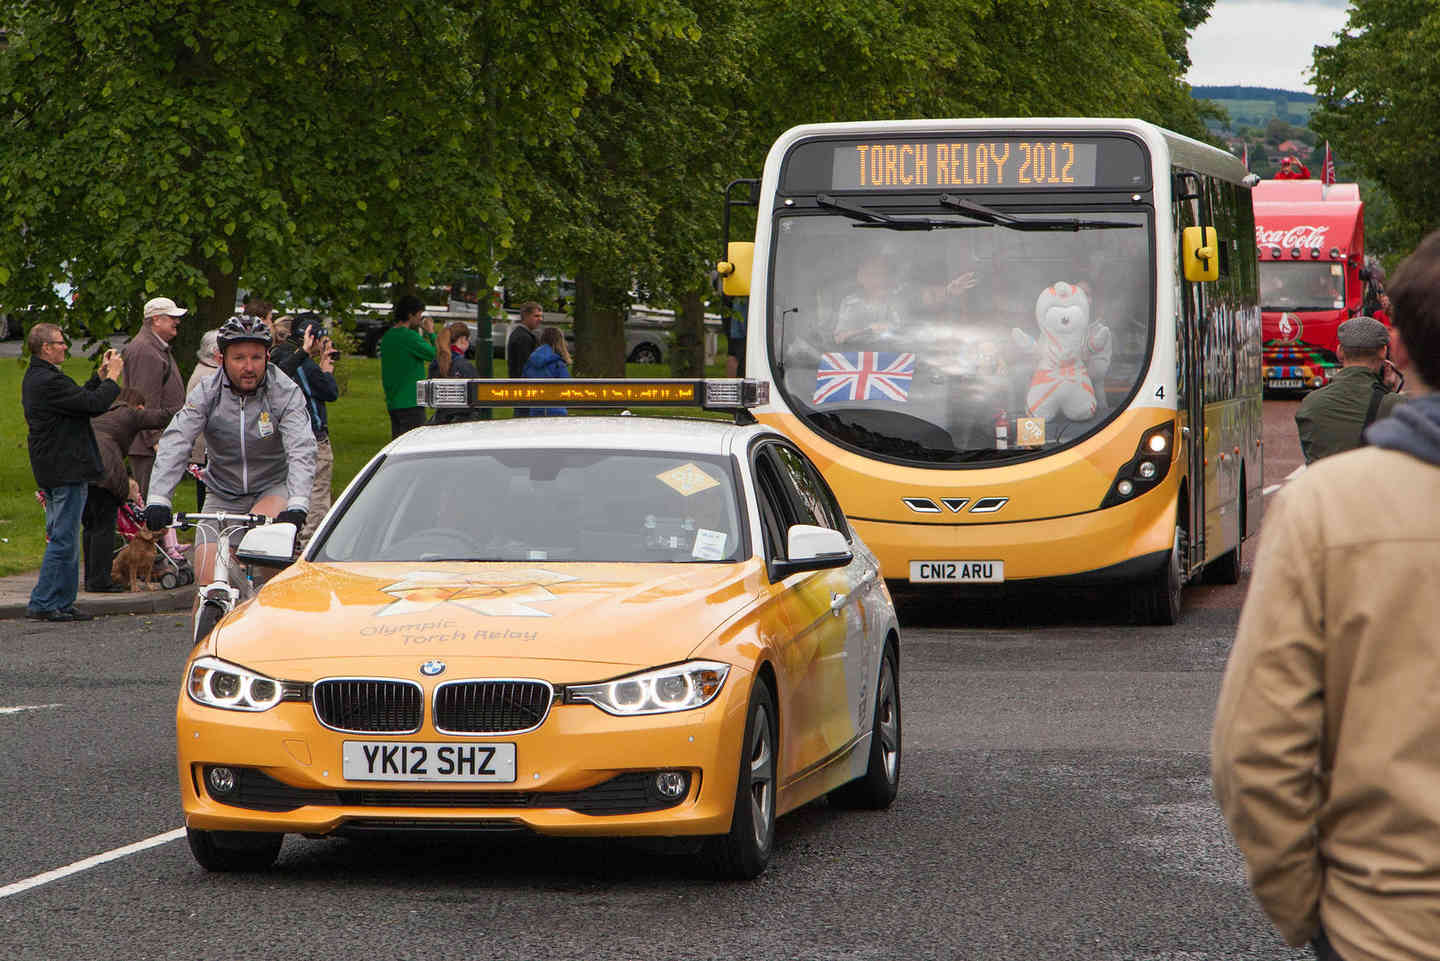 Gilesgate hosts events, like the 2012 Olympic Torch Relay